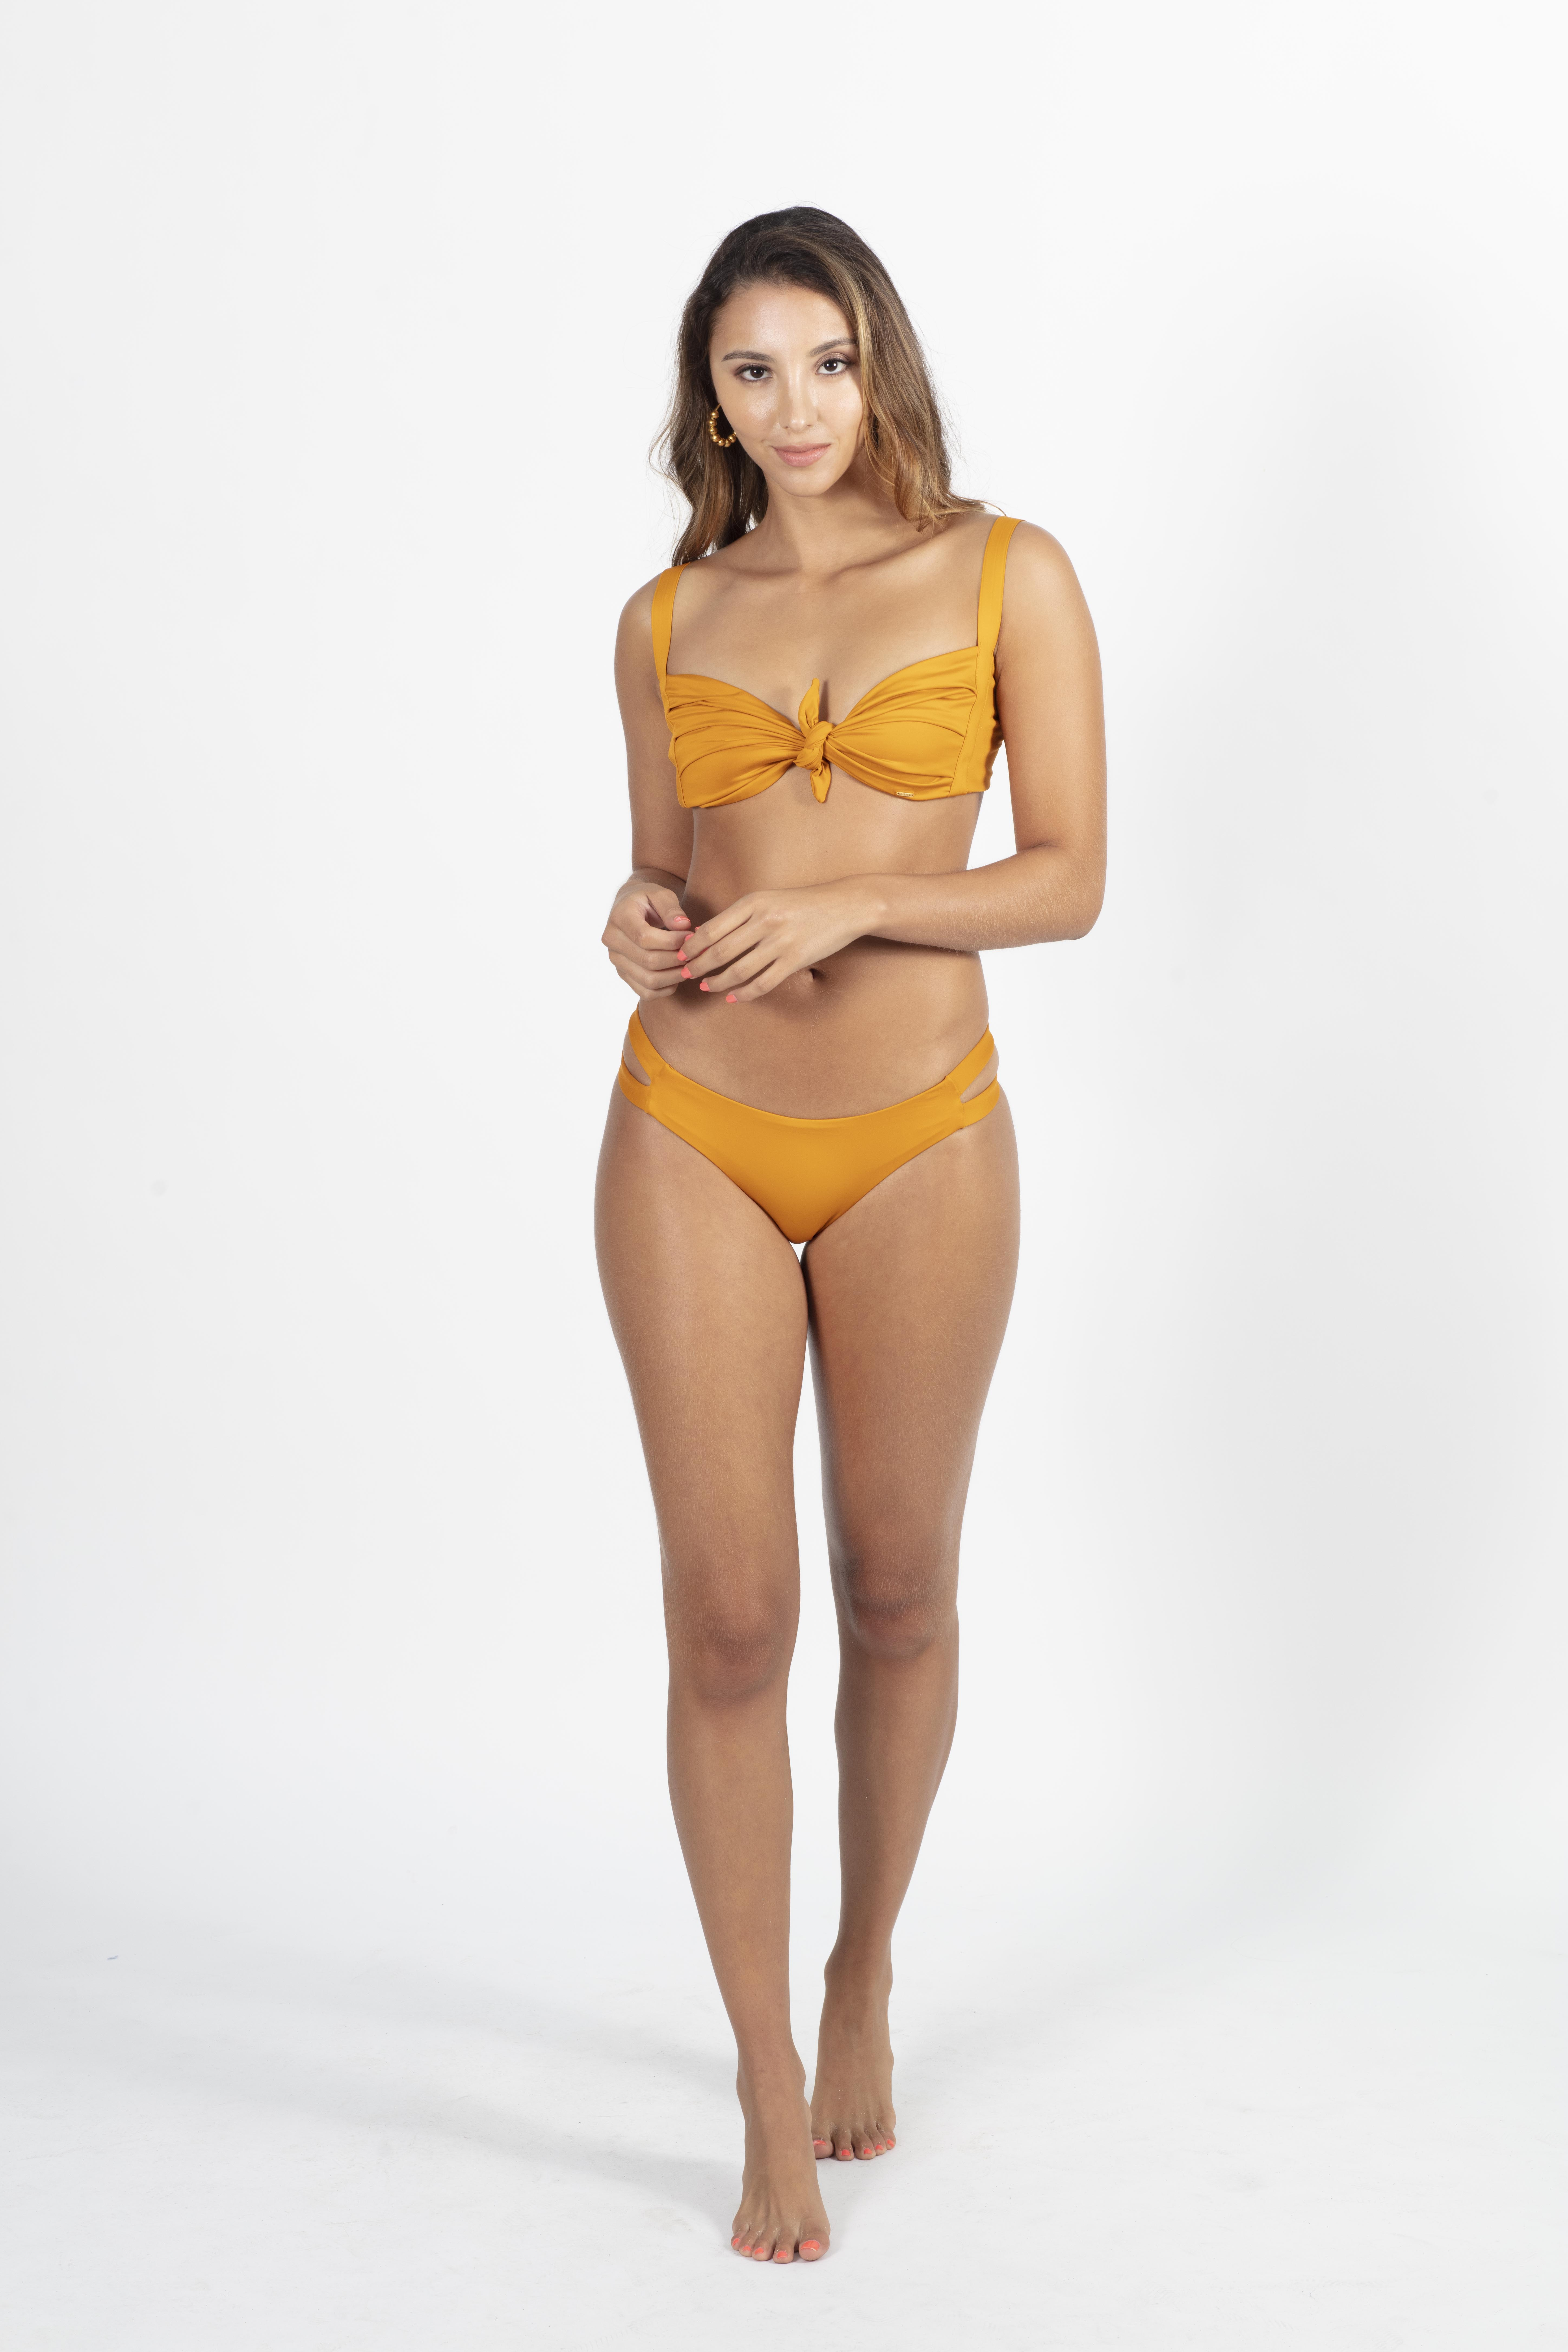 Formentera Tiangle Top With Ribbon